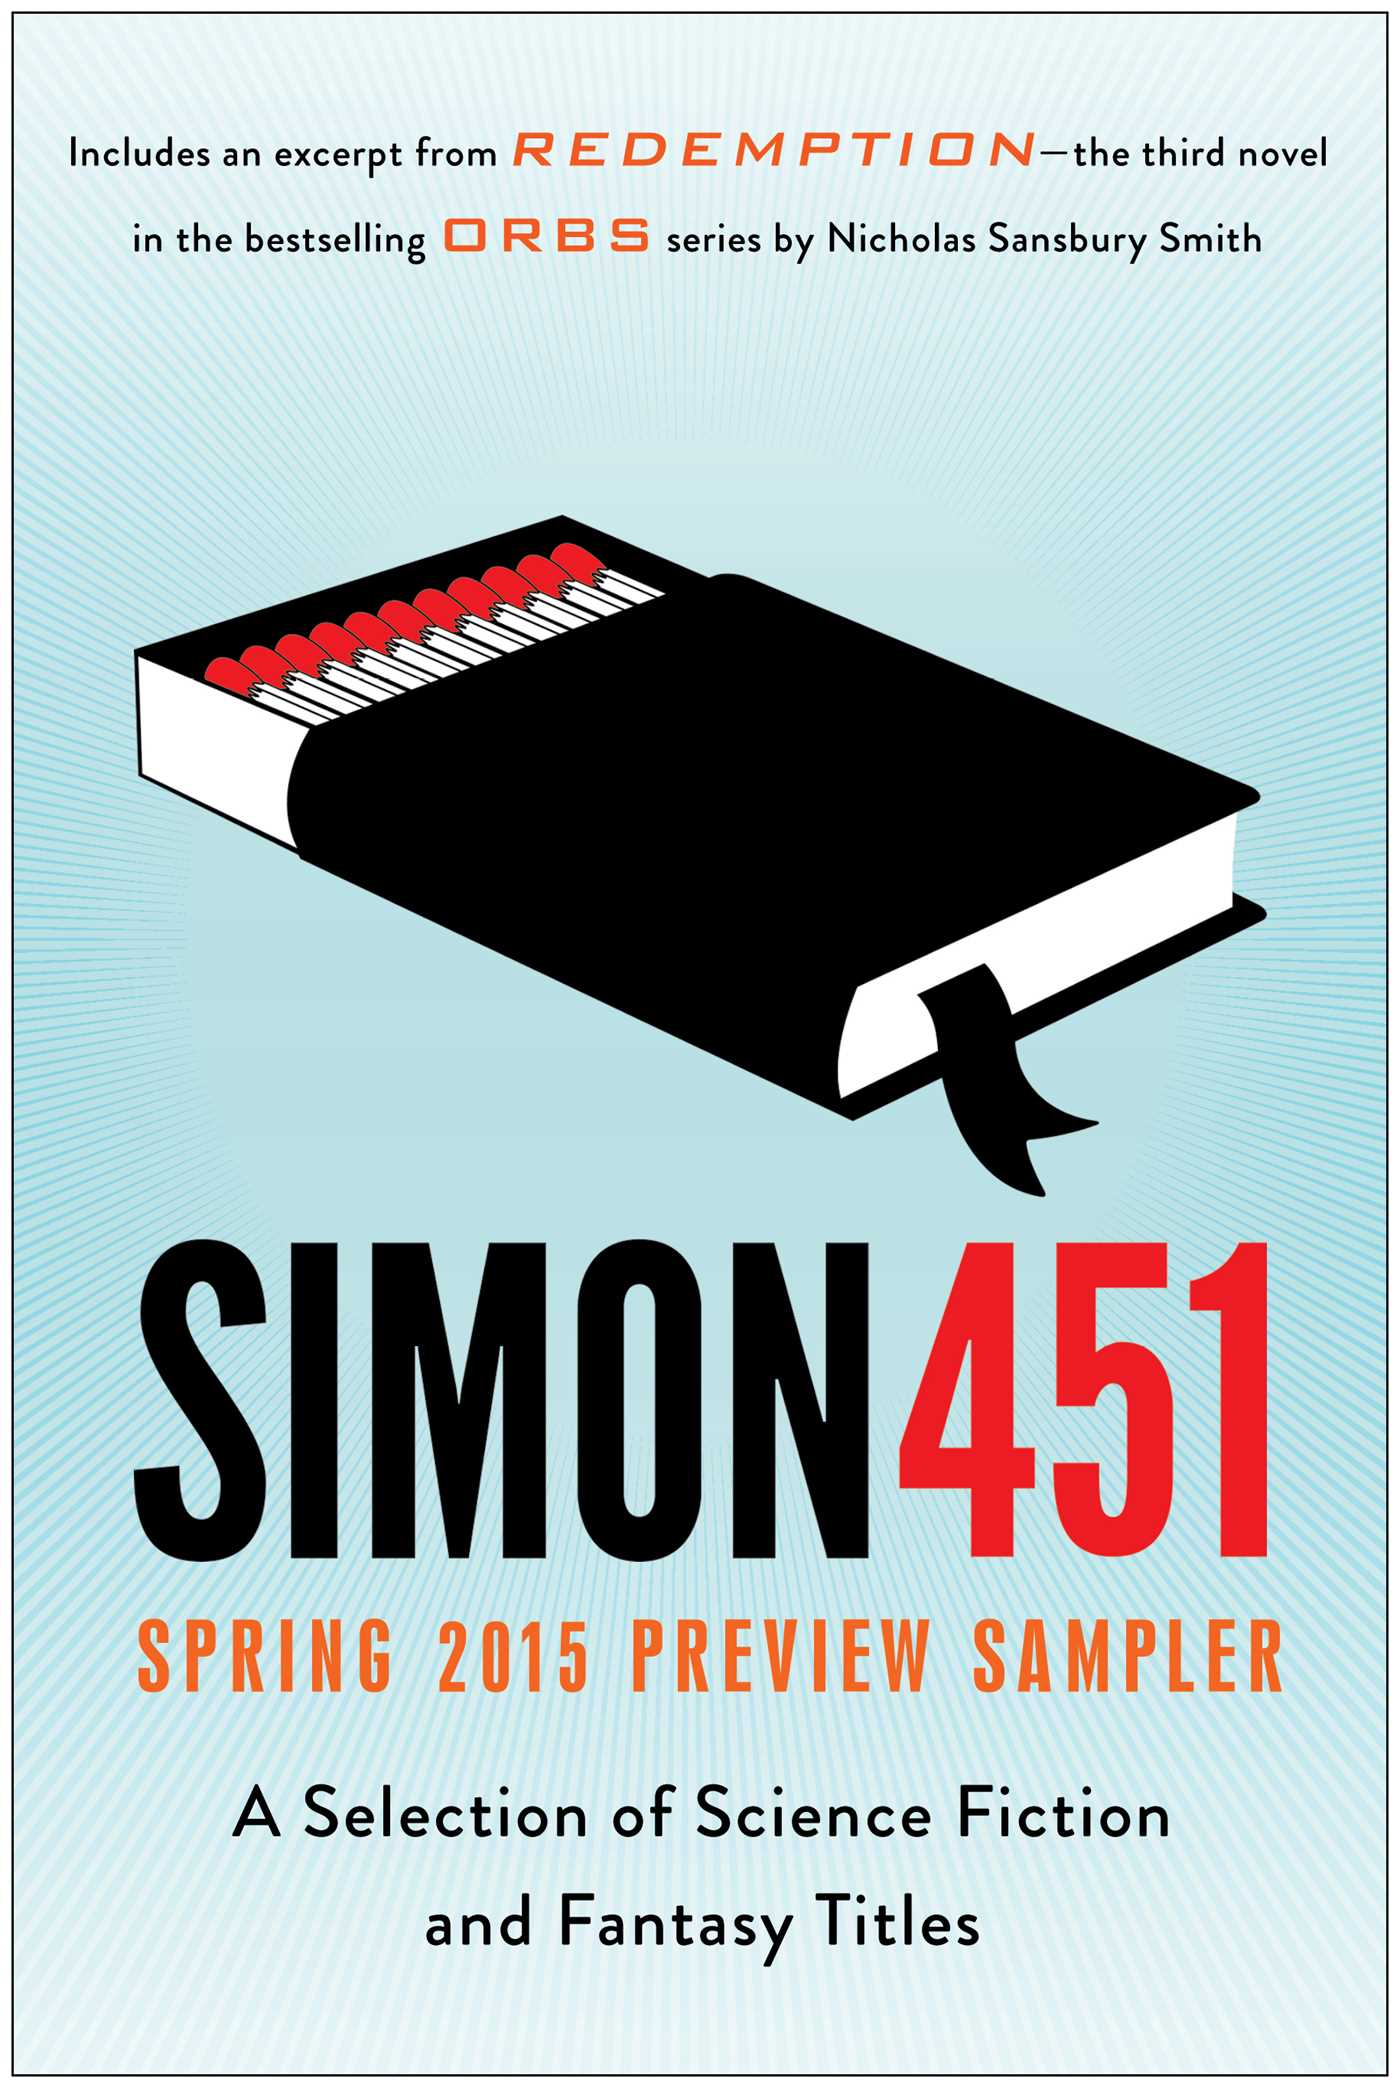 Simon451 spring 2015 preview sampler 9781501106866 hr